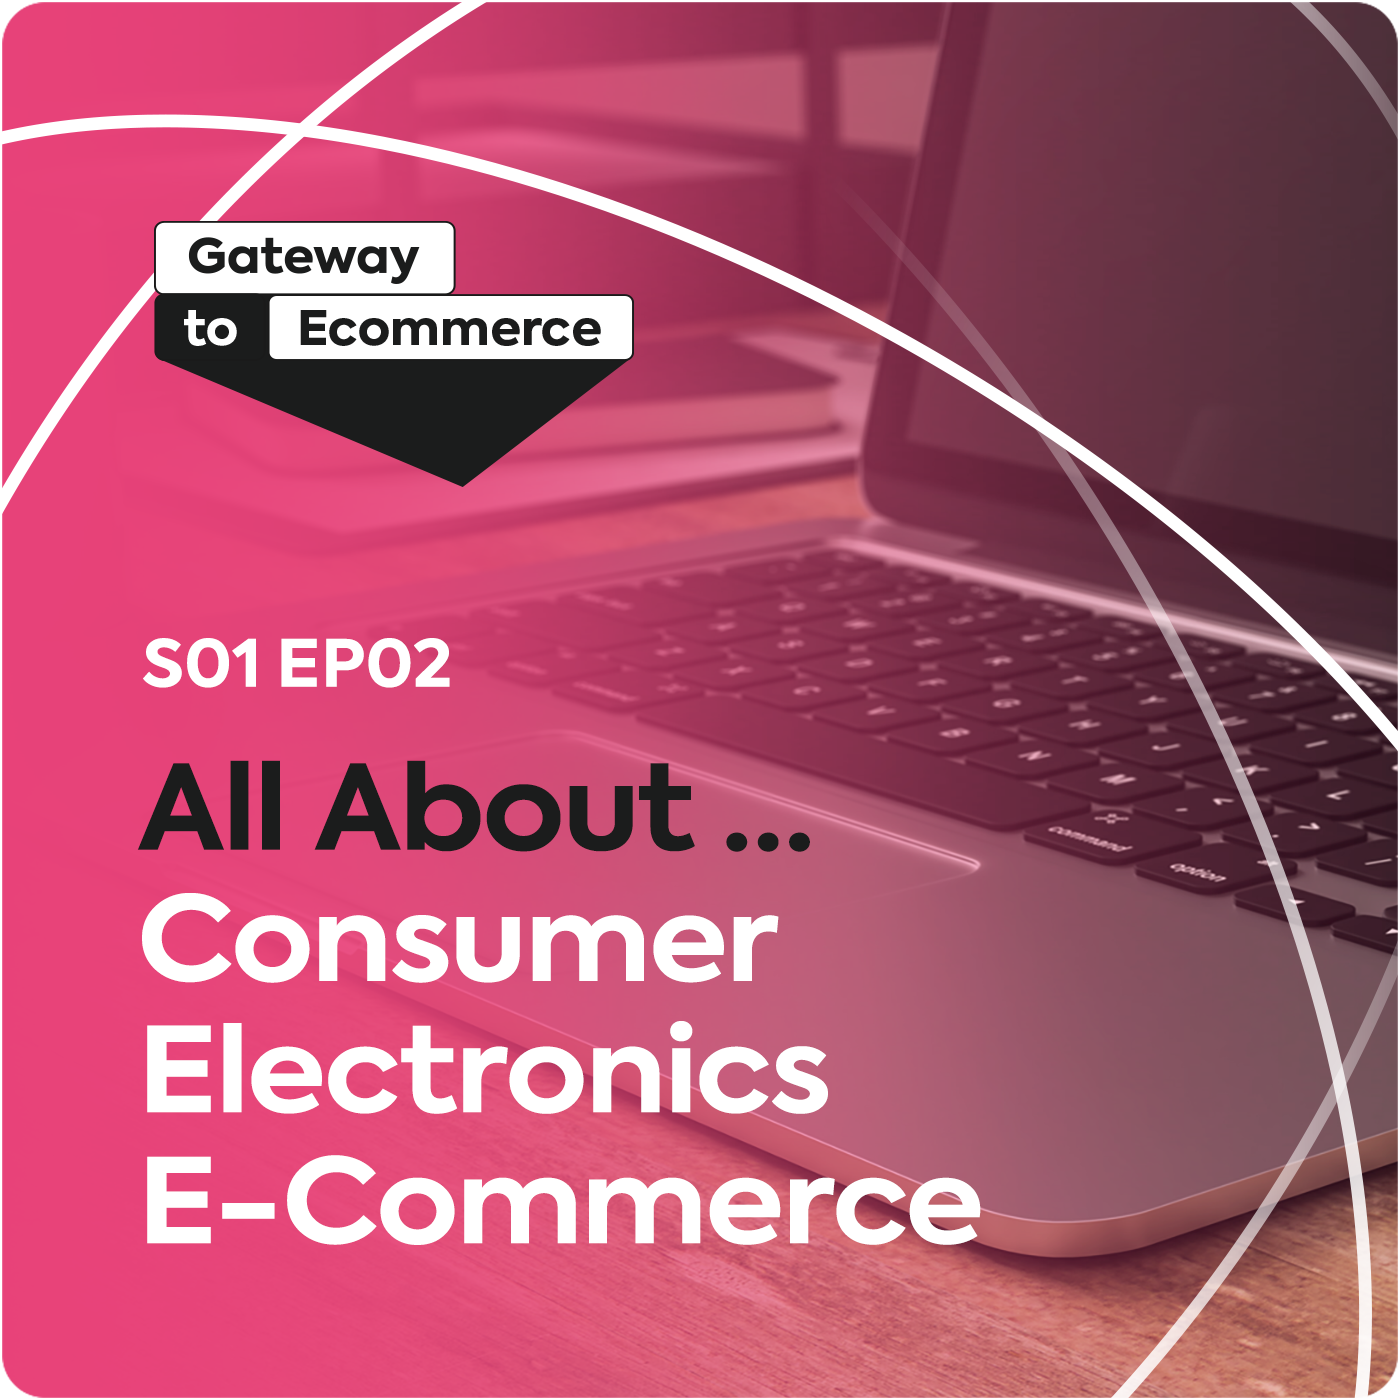 All About... Consumer Electronics E-Commerce